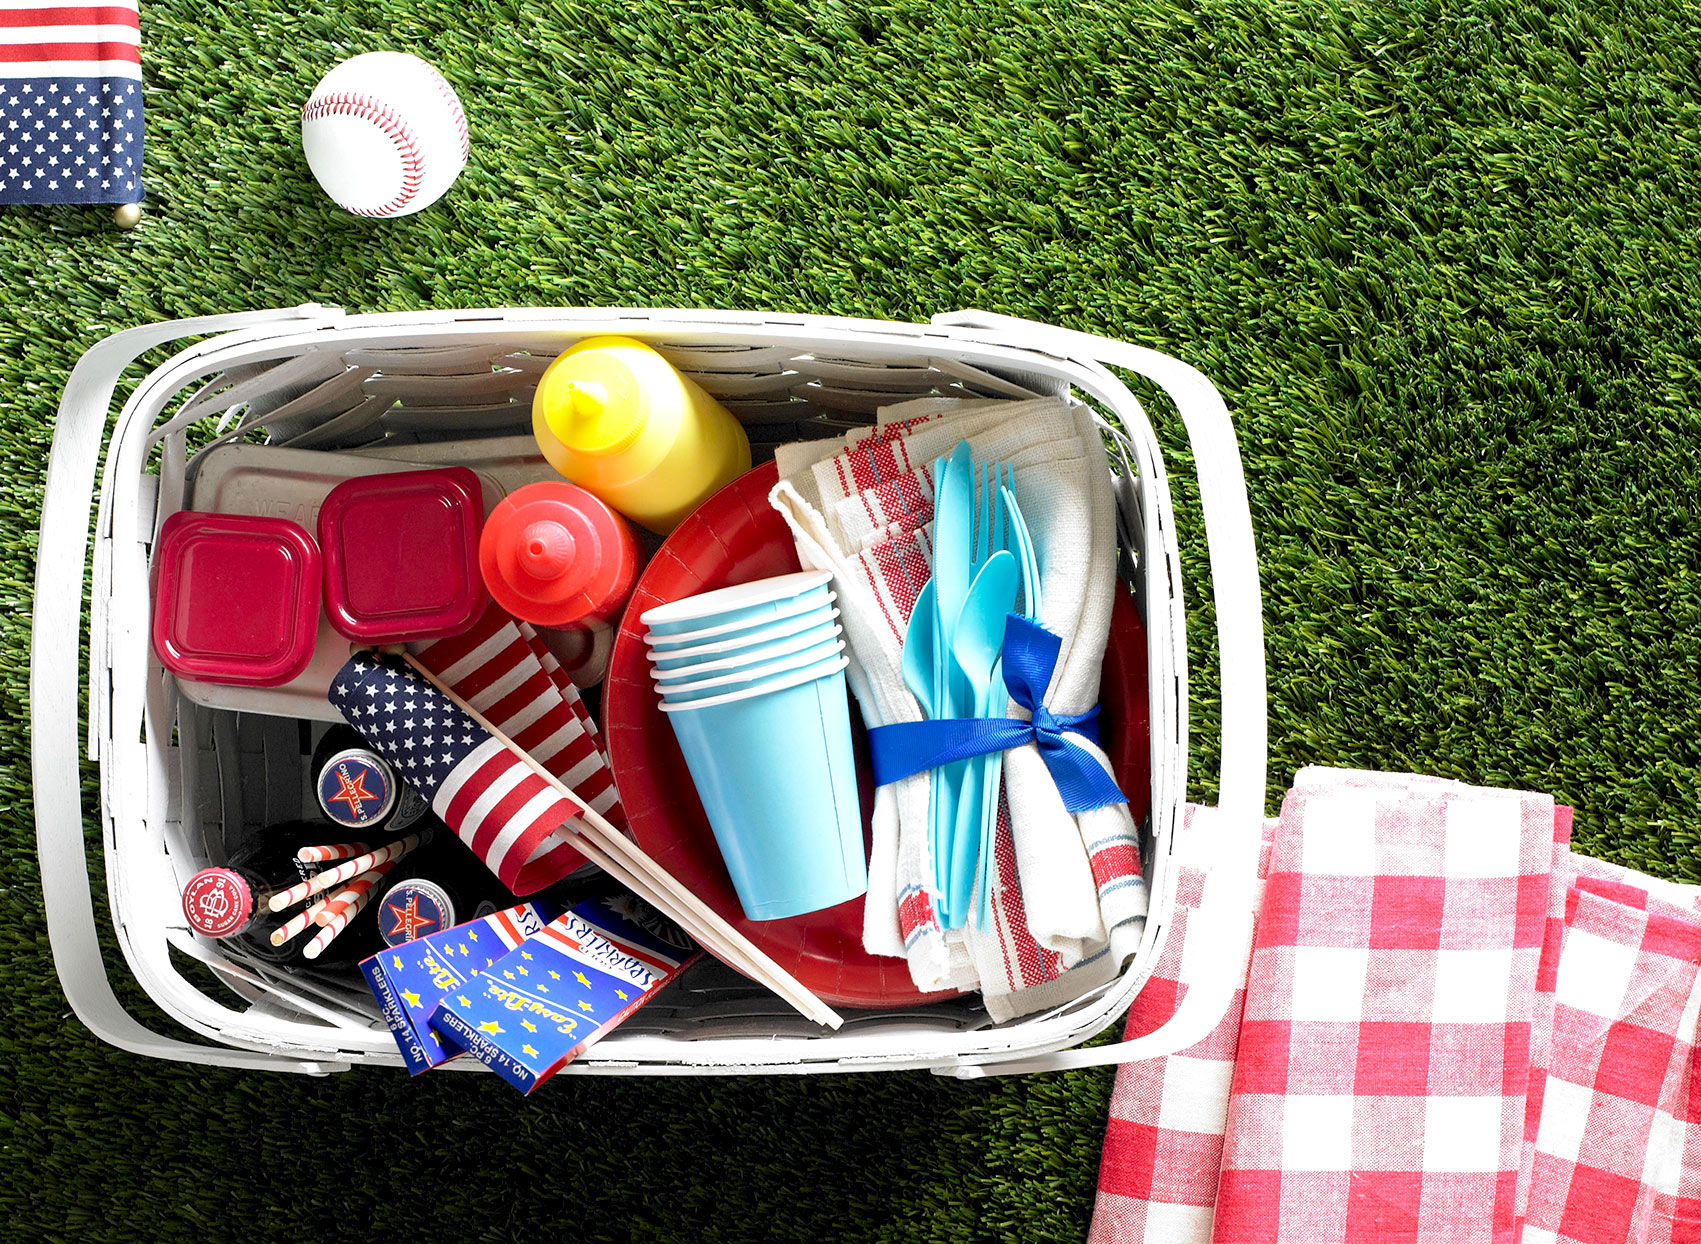 Basket filled with picnic supplies